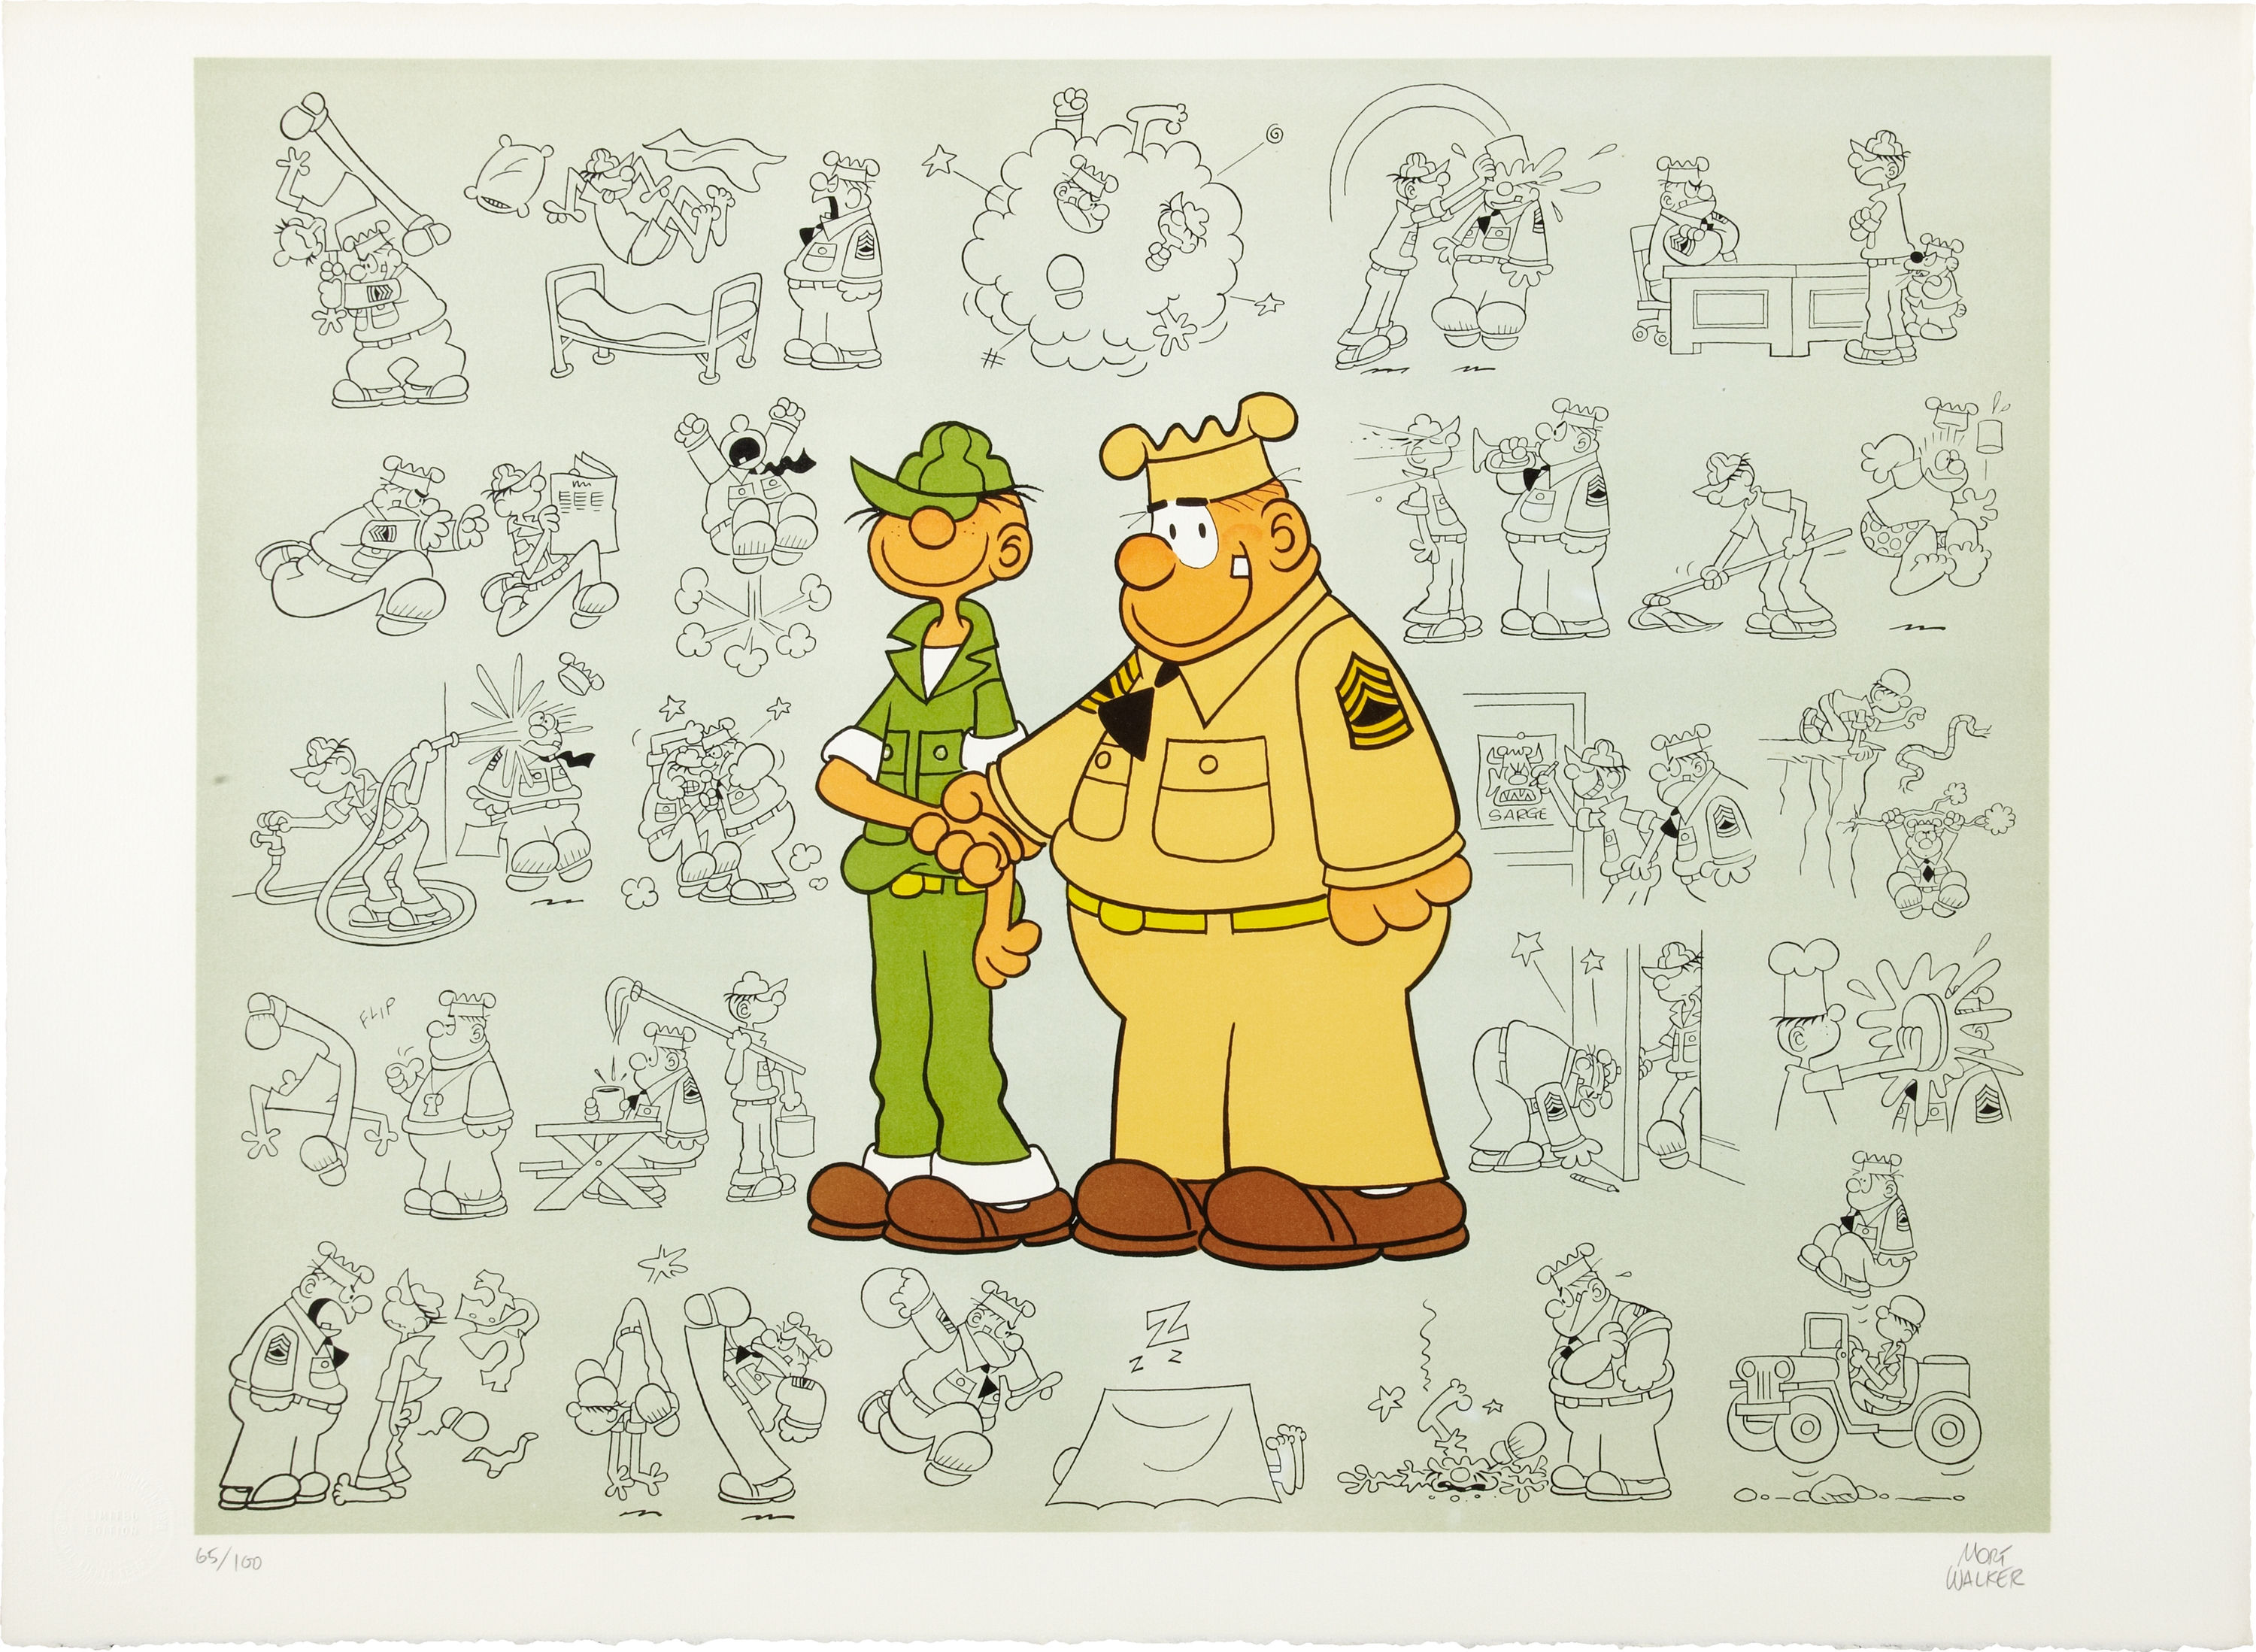 Beetle and Sarge by Mort Walker. Limited Edition Comic Art print, Harry N. Abrams, 1978.